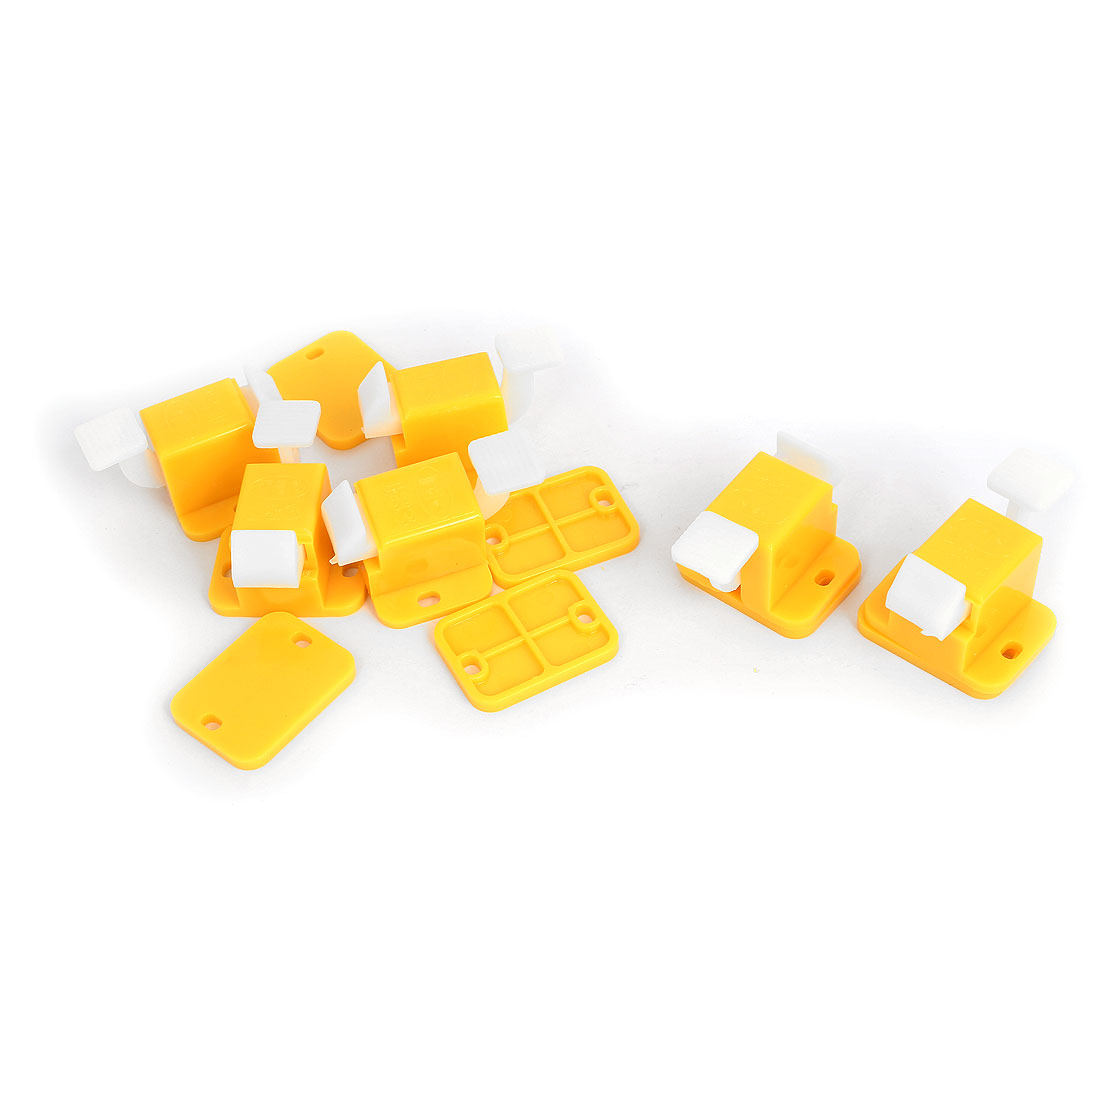 6pcs Yellow White Plastic Prototype Test Fixture Jig Edge Latch Assambly for PCB Board